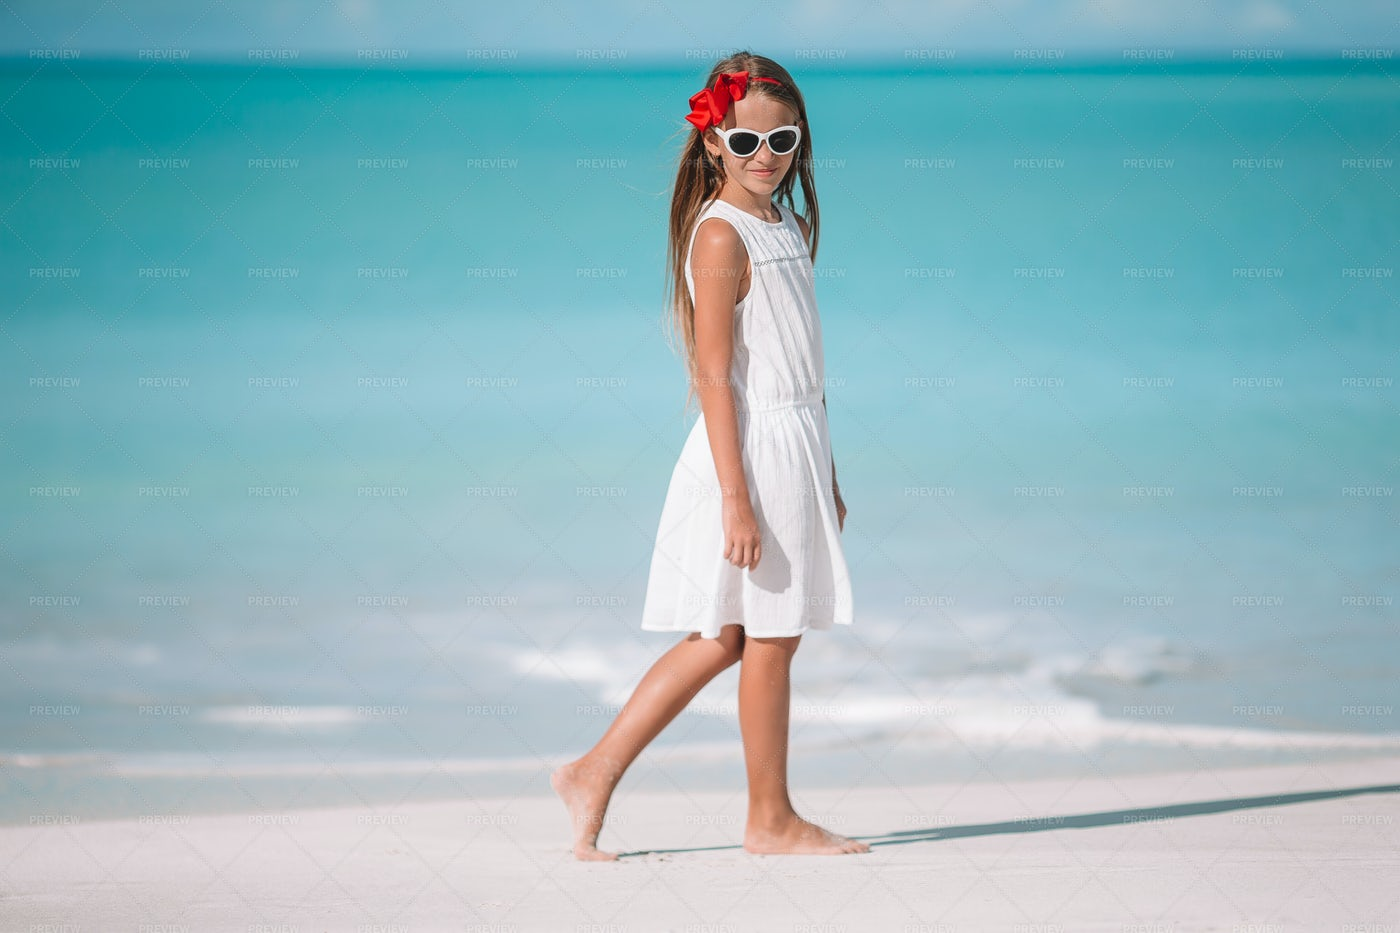 Girl In Front Of The Beach: Stock Photos